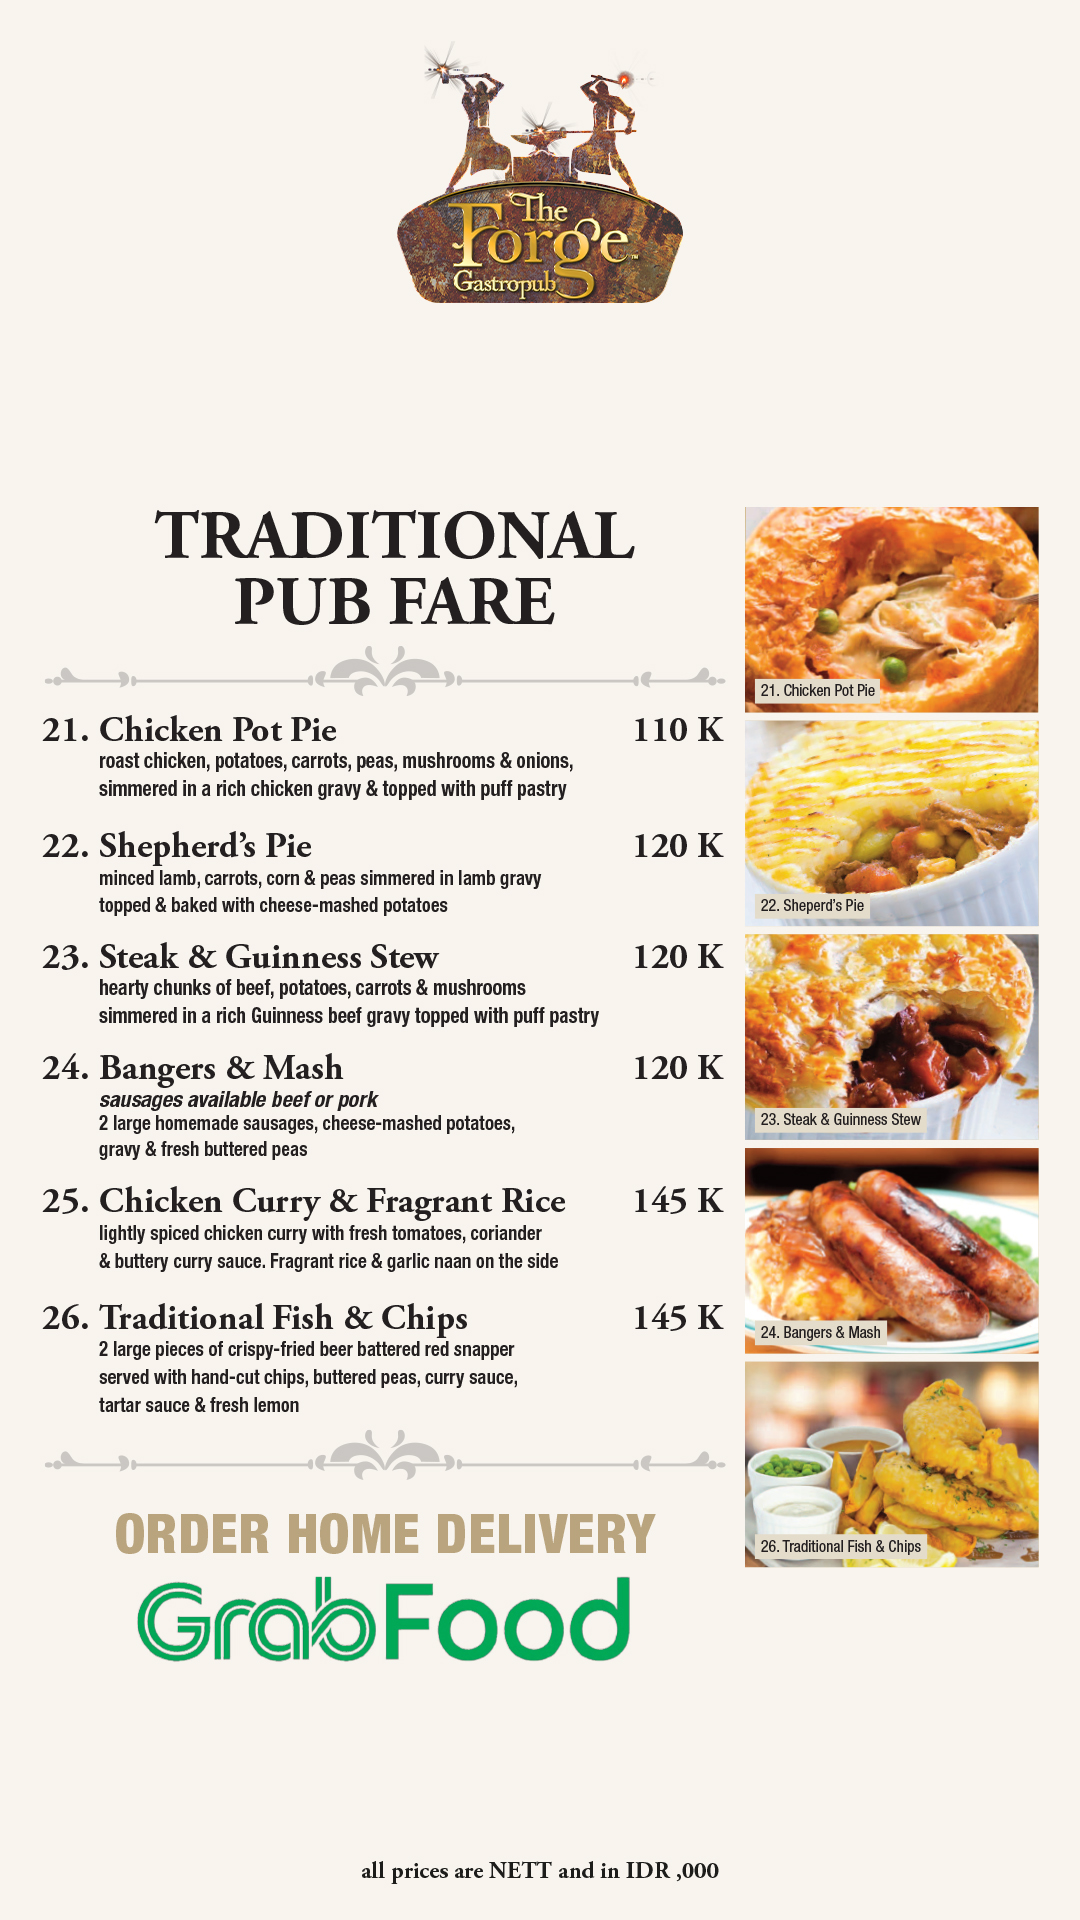 Menu | 04 Traditional Pub Fare